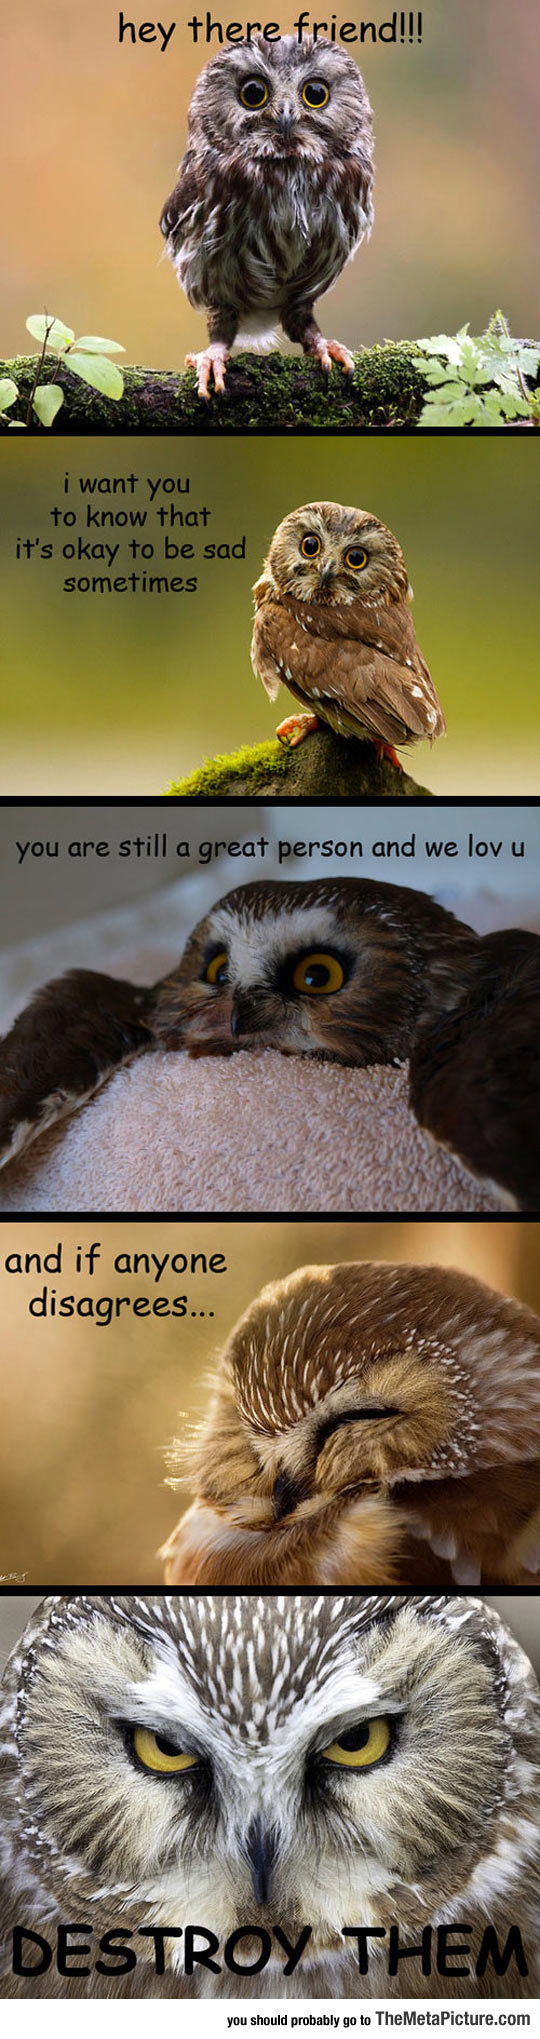 cool-owl-sad-destroy-cute